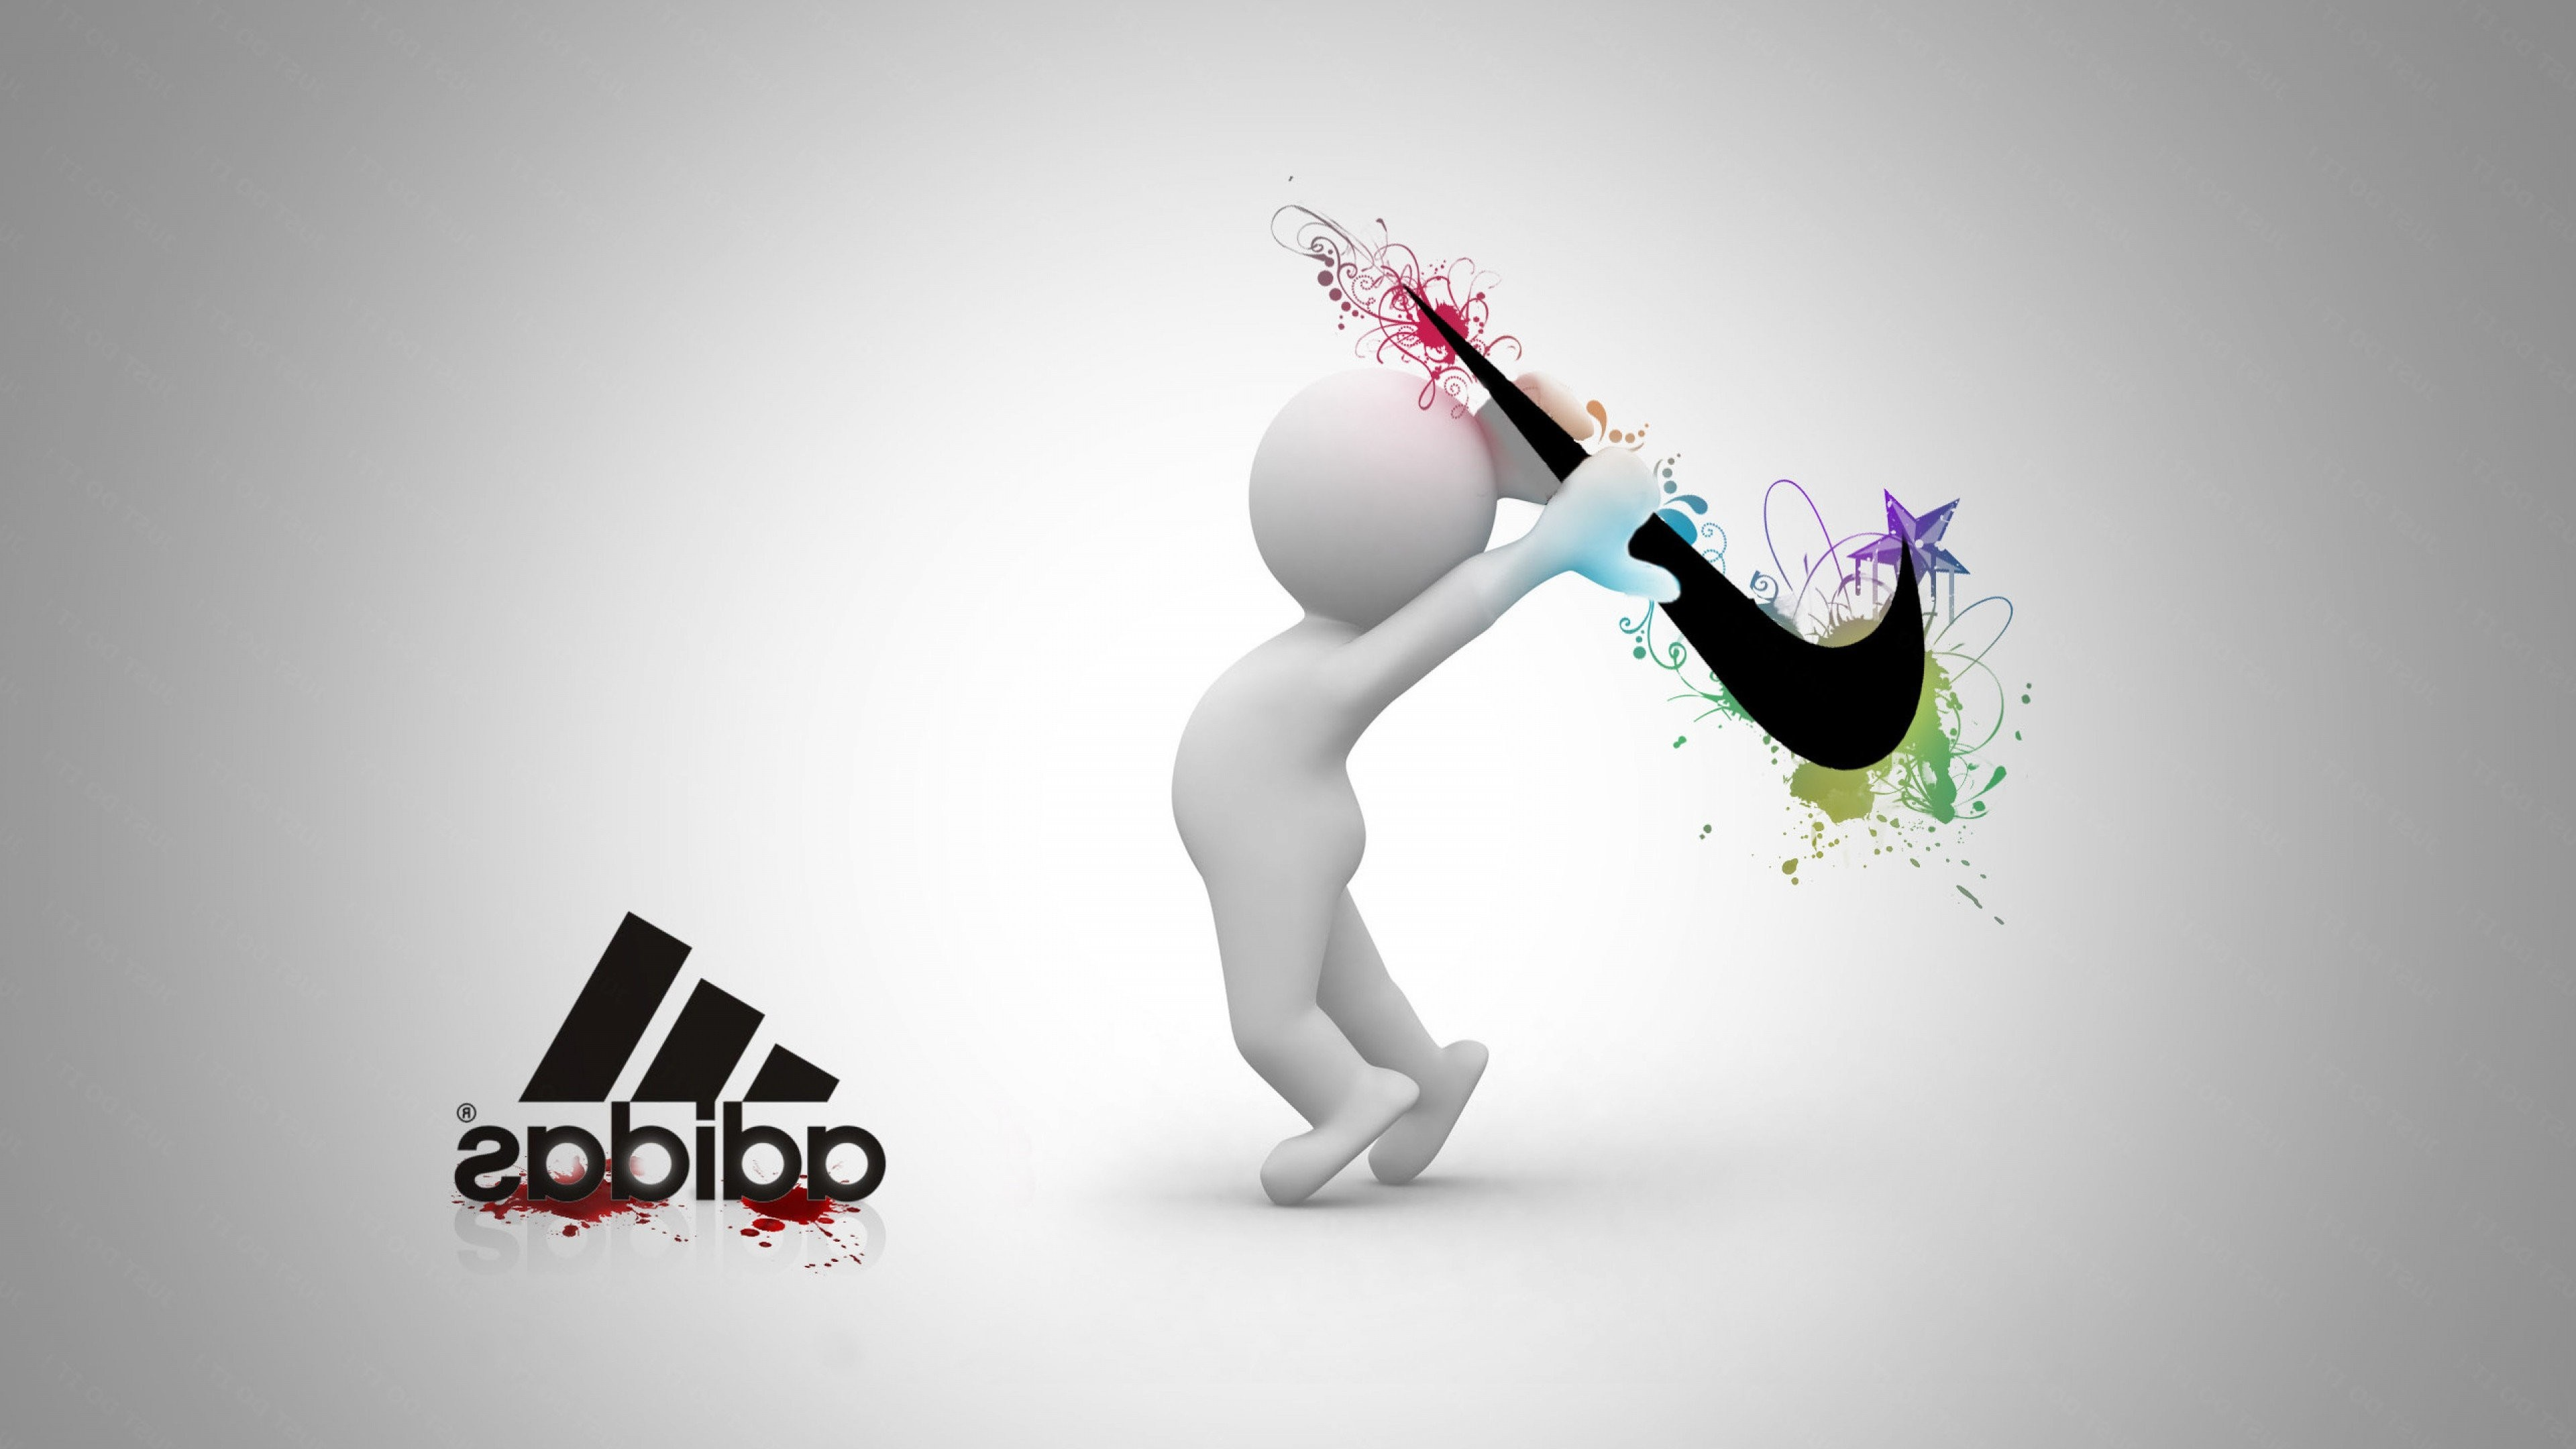 3840x2160 nike vs adidas wallpapers hd desktop wallpapers hd high definition windows 10 mac apple colourful